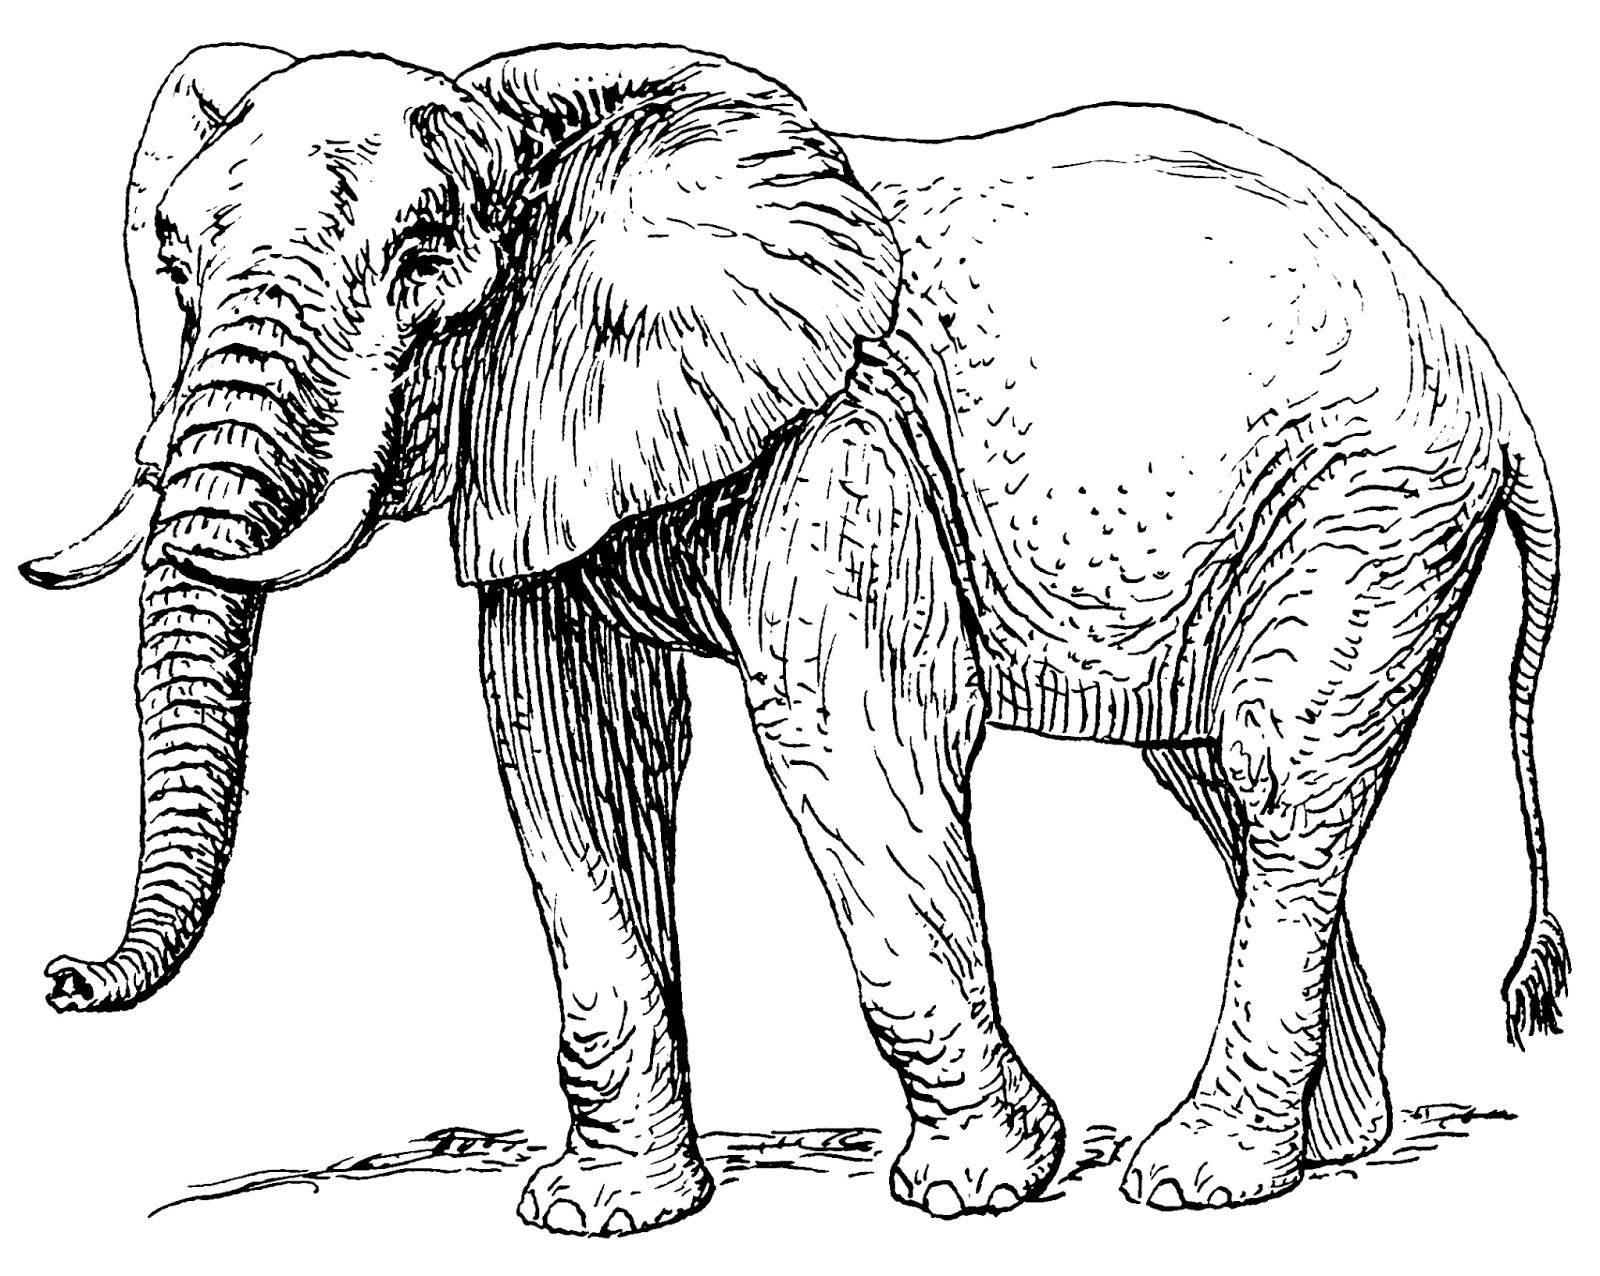 hd wallpapers free different types elephant high resolution hd 1920X1080 HD City Wallpapers funny elephant hd wallpapers scrathed elephant hd wallpapers unseen elephant hd wallpapers elephant bathing wallpapers elephant fight hd wallpapers